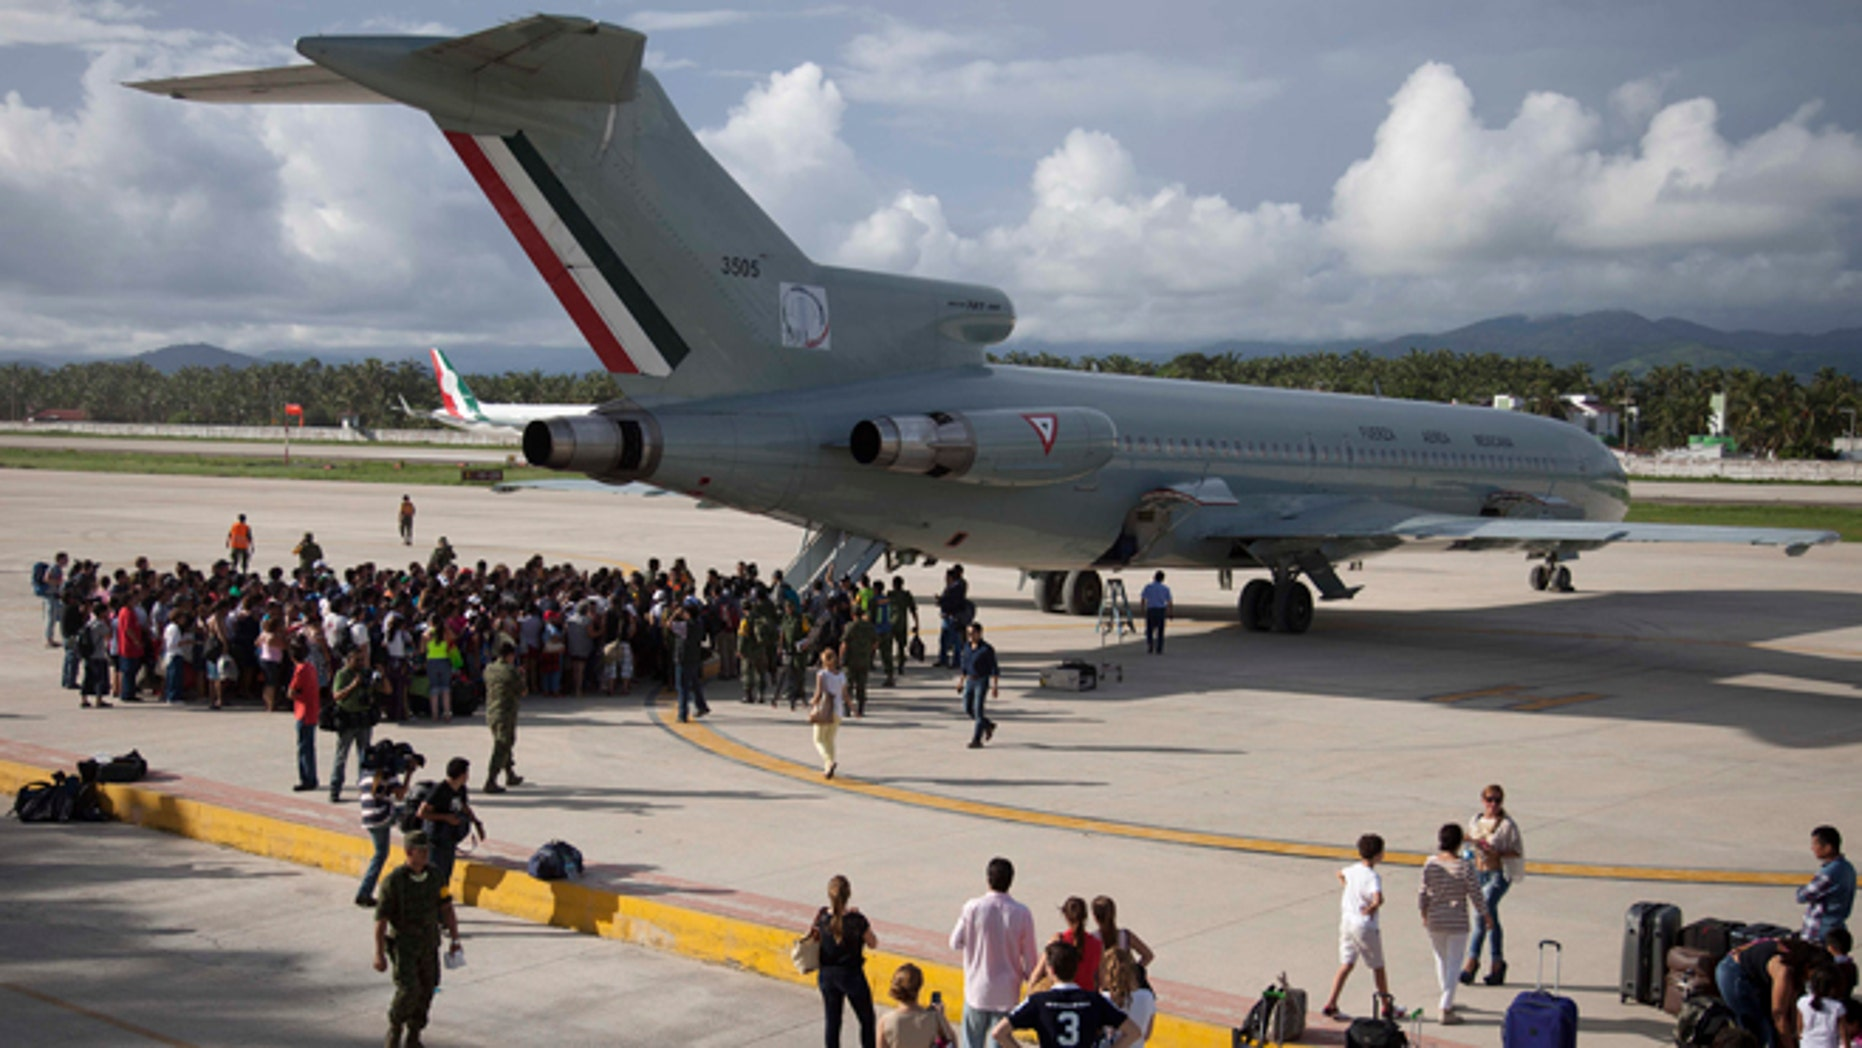 Hundreds of stranded tourists gather around a Mexican Air Force jet as they wait to be evacuated, at the air base in Pie de la Cuesta, near Acapulco, Mexico, Tuesday, Sept. 17, 2013. With roads blocked by landslides, rockslides, floods and collapsed bridges, Acapulco was cut off from road transport after Tropical Storm Manuel made landfall on Sunday. The airport as well, was flooded. Emergency flights began arriving in Acapulco to evacuate at least 40,000 mainly Mexican tourists stranded in the resort city. (AP Photo/Eduardo Verdugo)